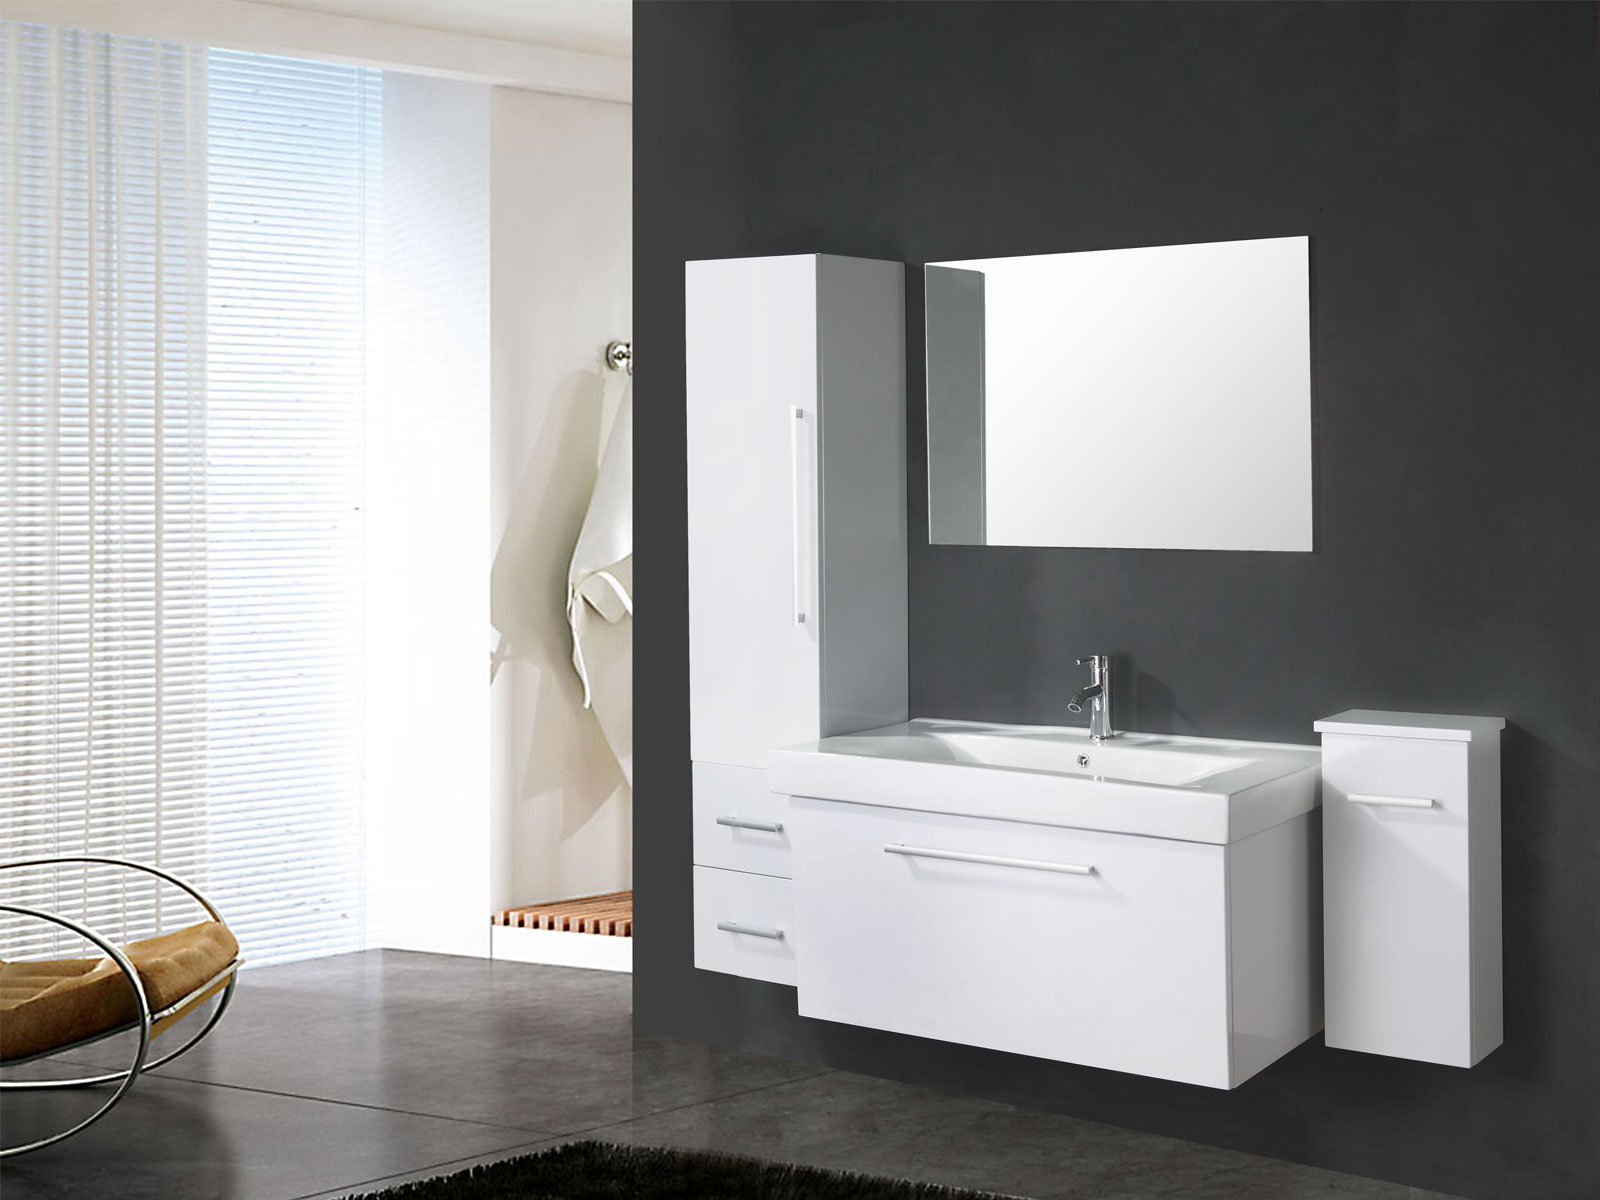 White london meuble salle de bain 100 cm lavabo e for Mobili bagno lavabo grande